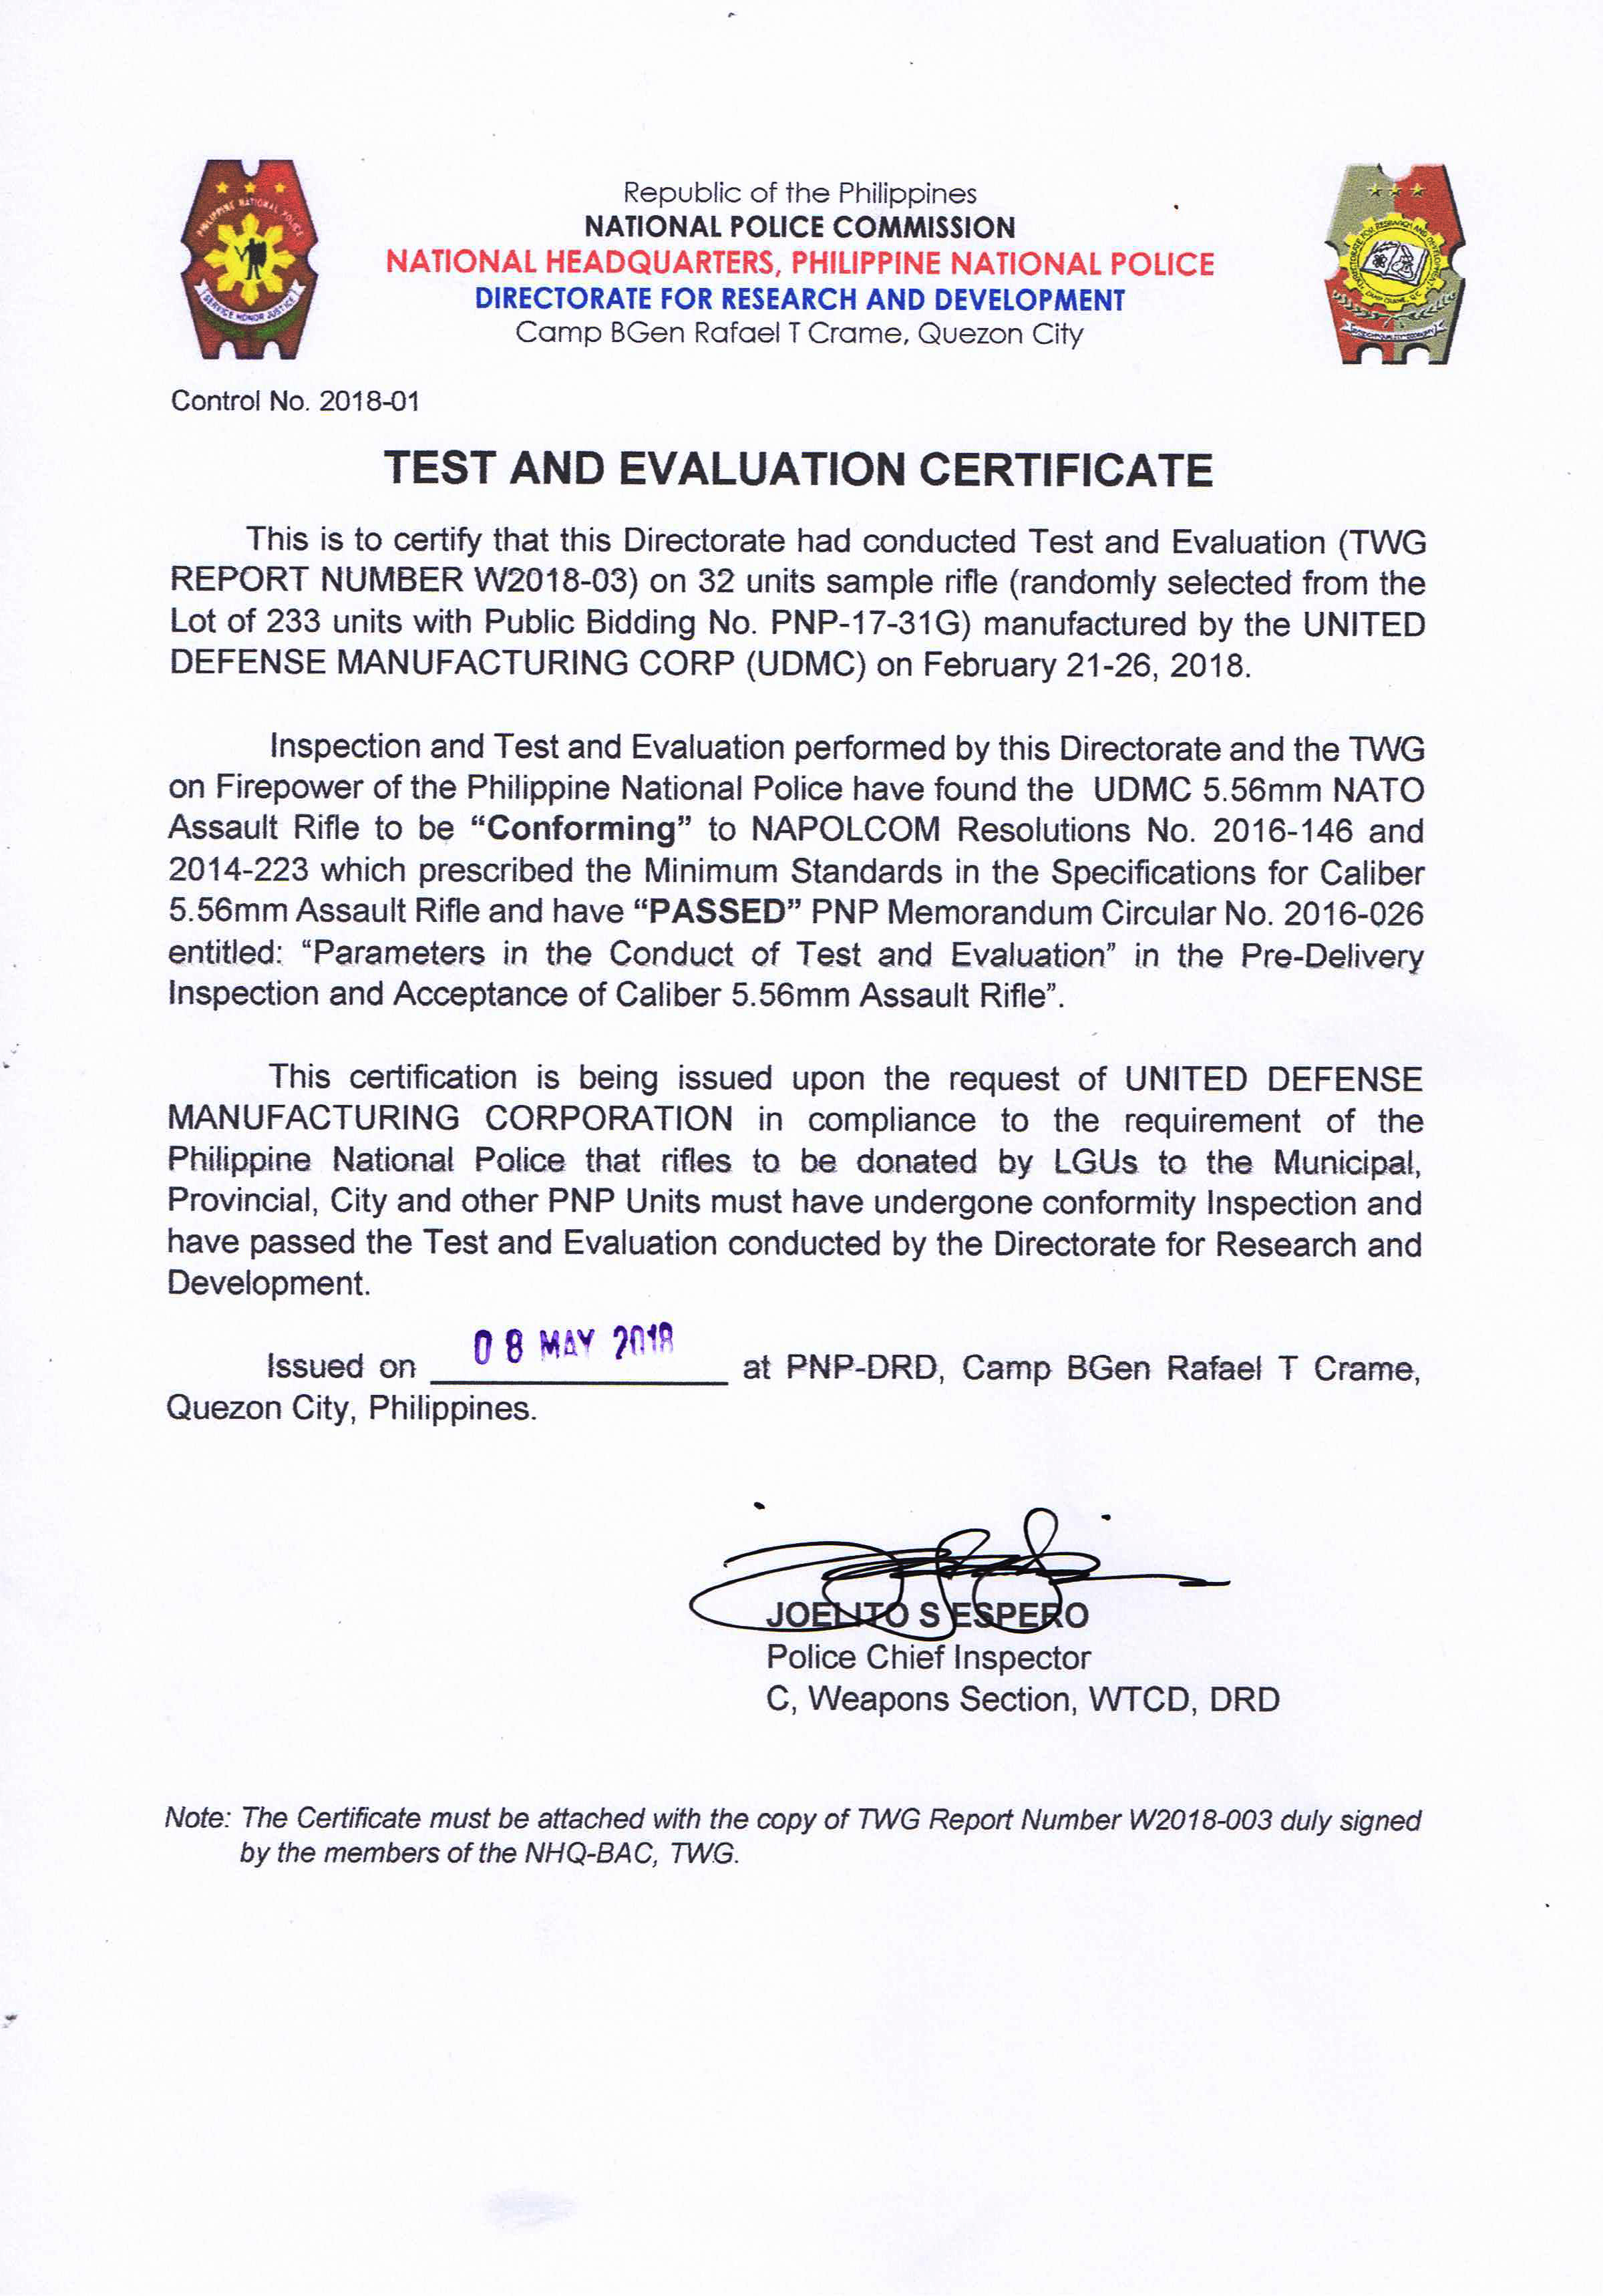 DRD_Test and Evaluation Certificate_233 units.jpg